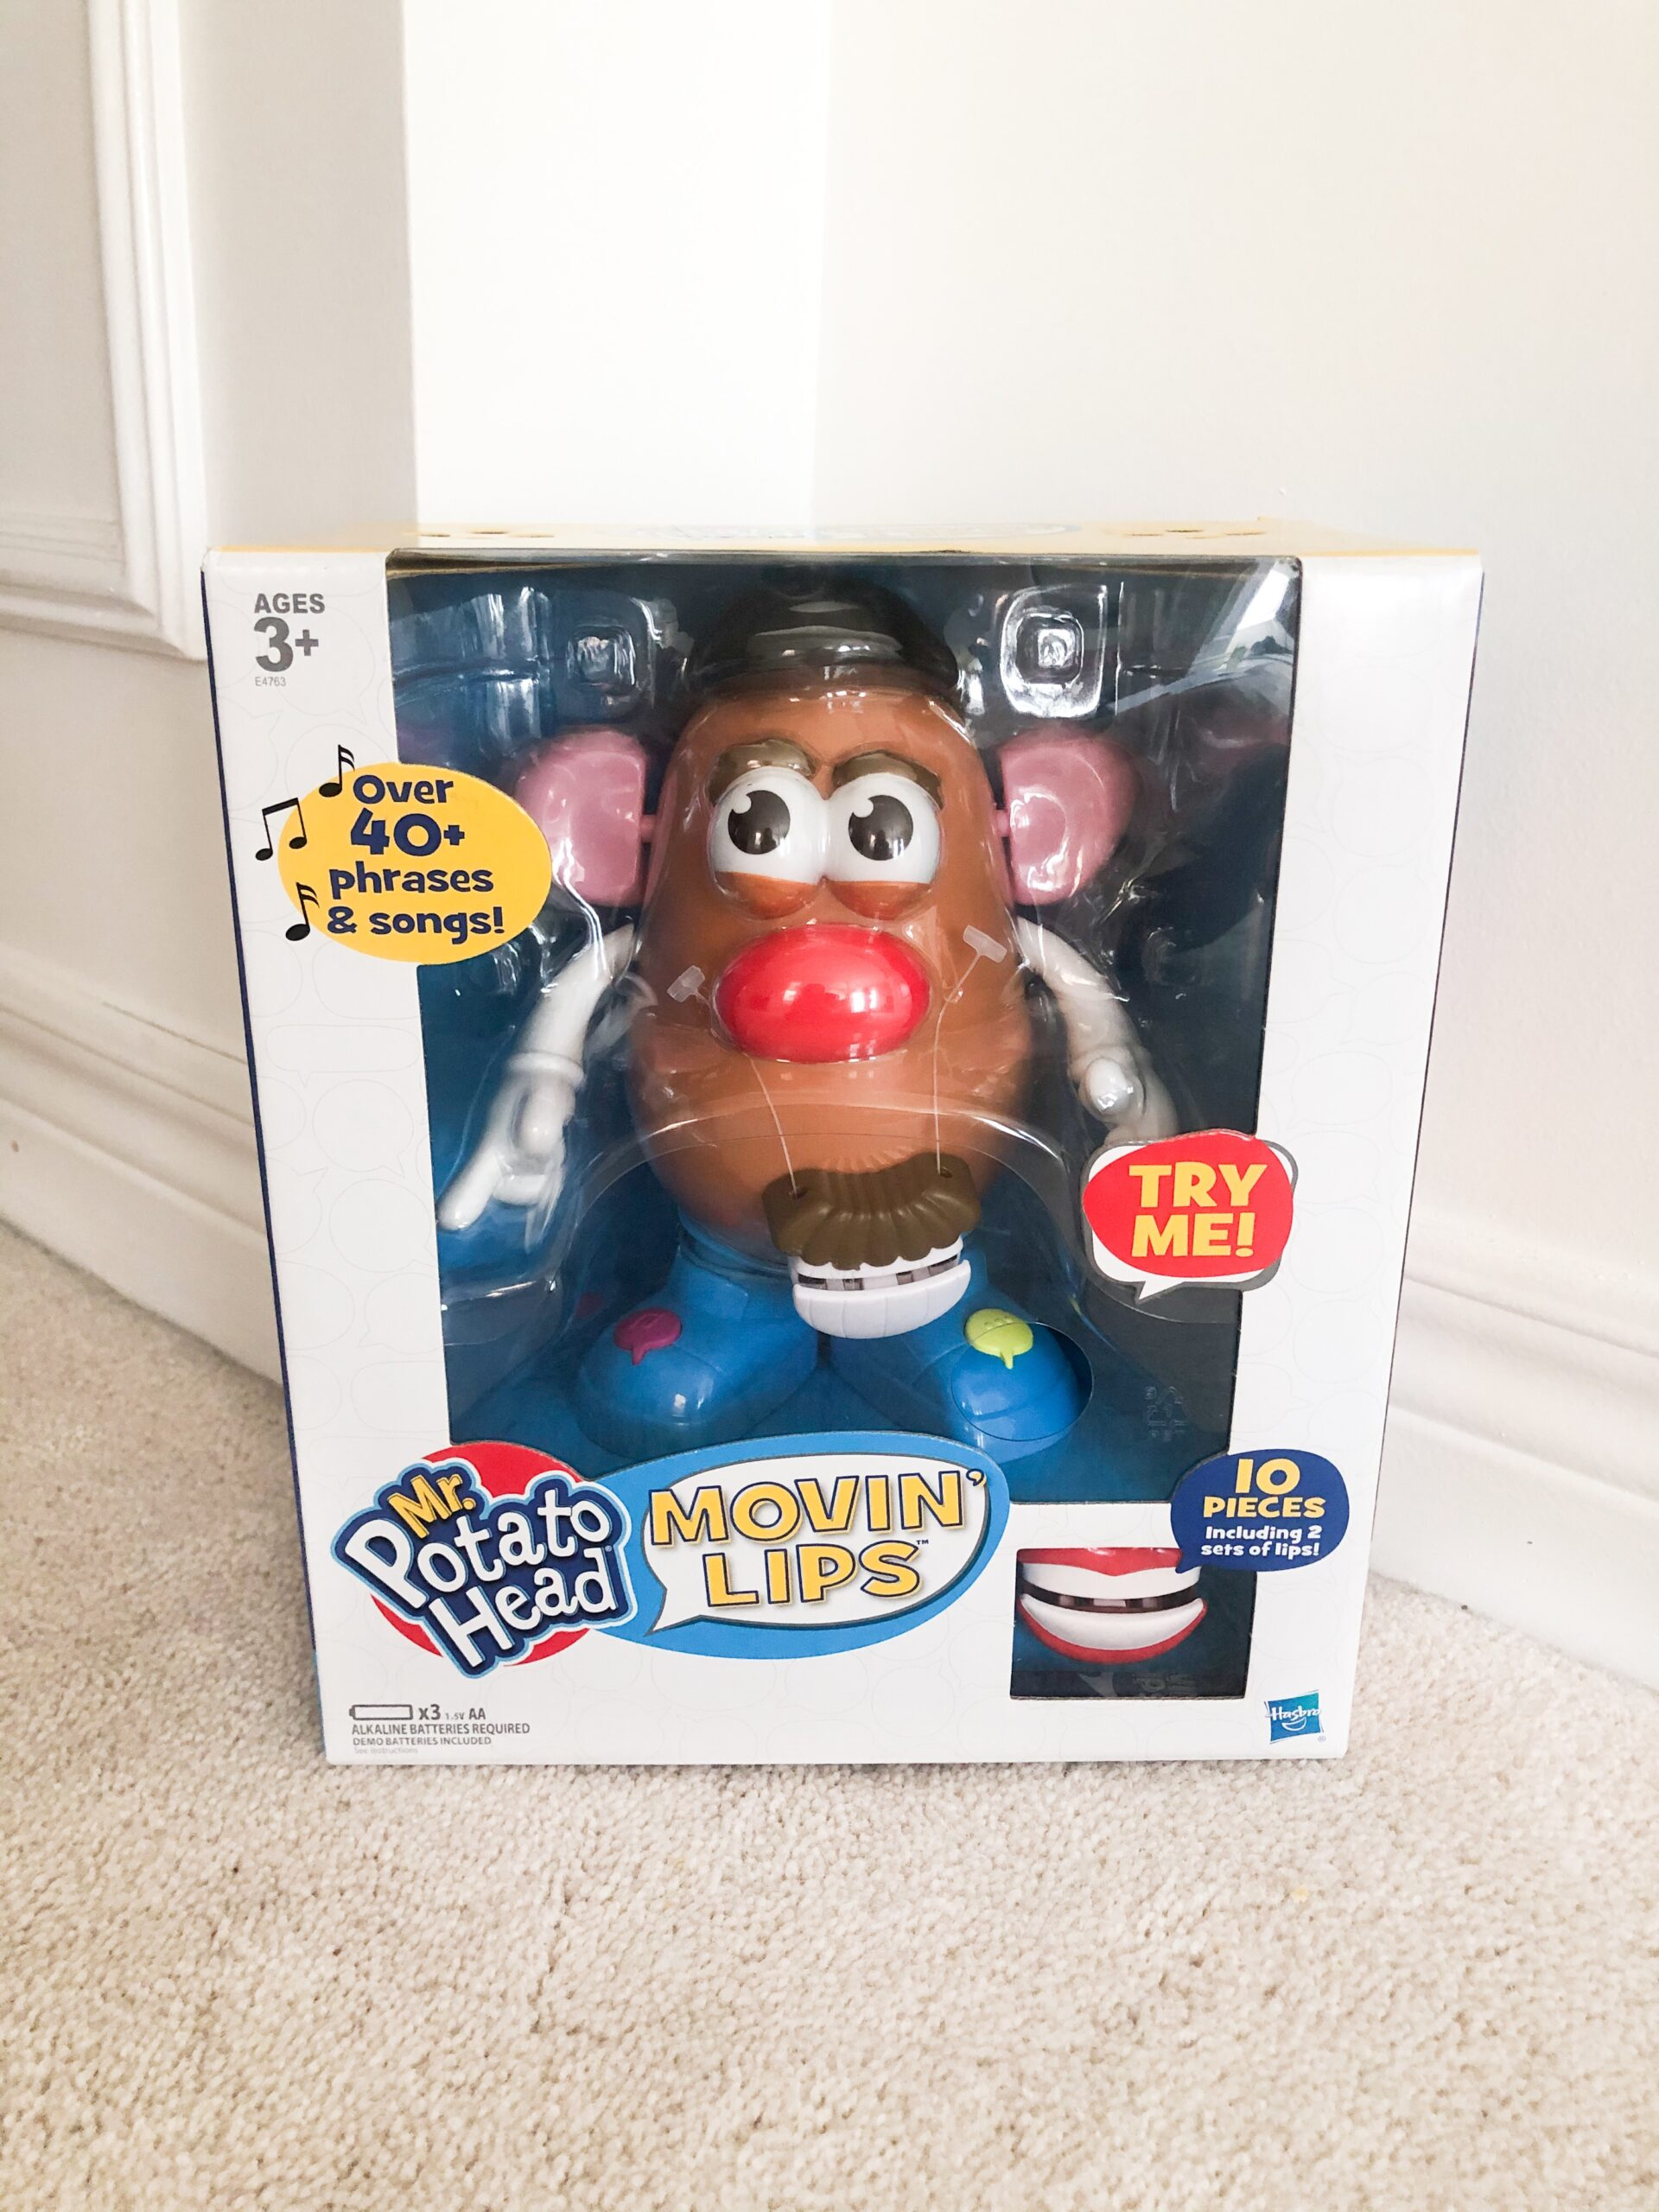 Hasbro Mr Potato Head Movin lips Review on Livin' life with Style